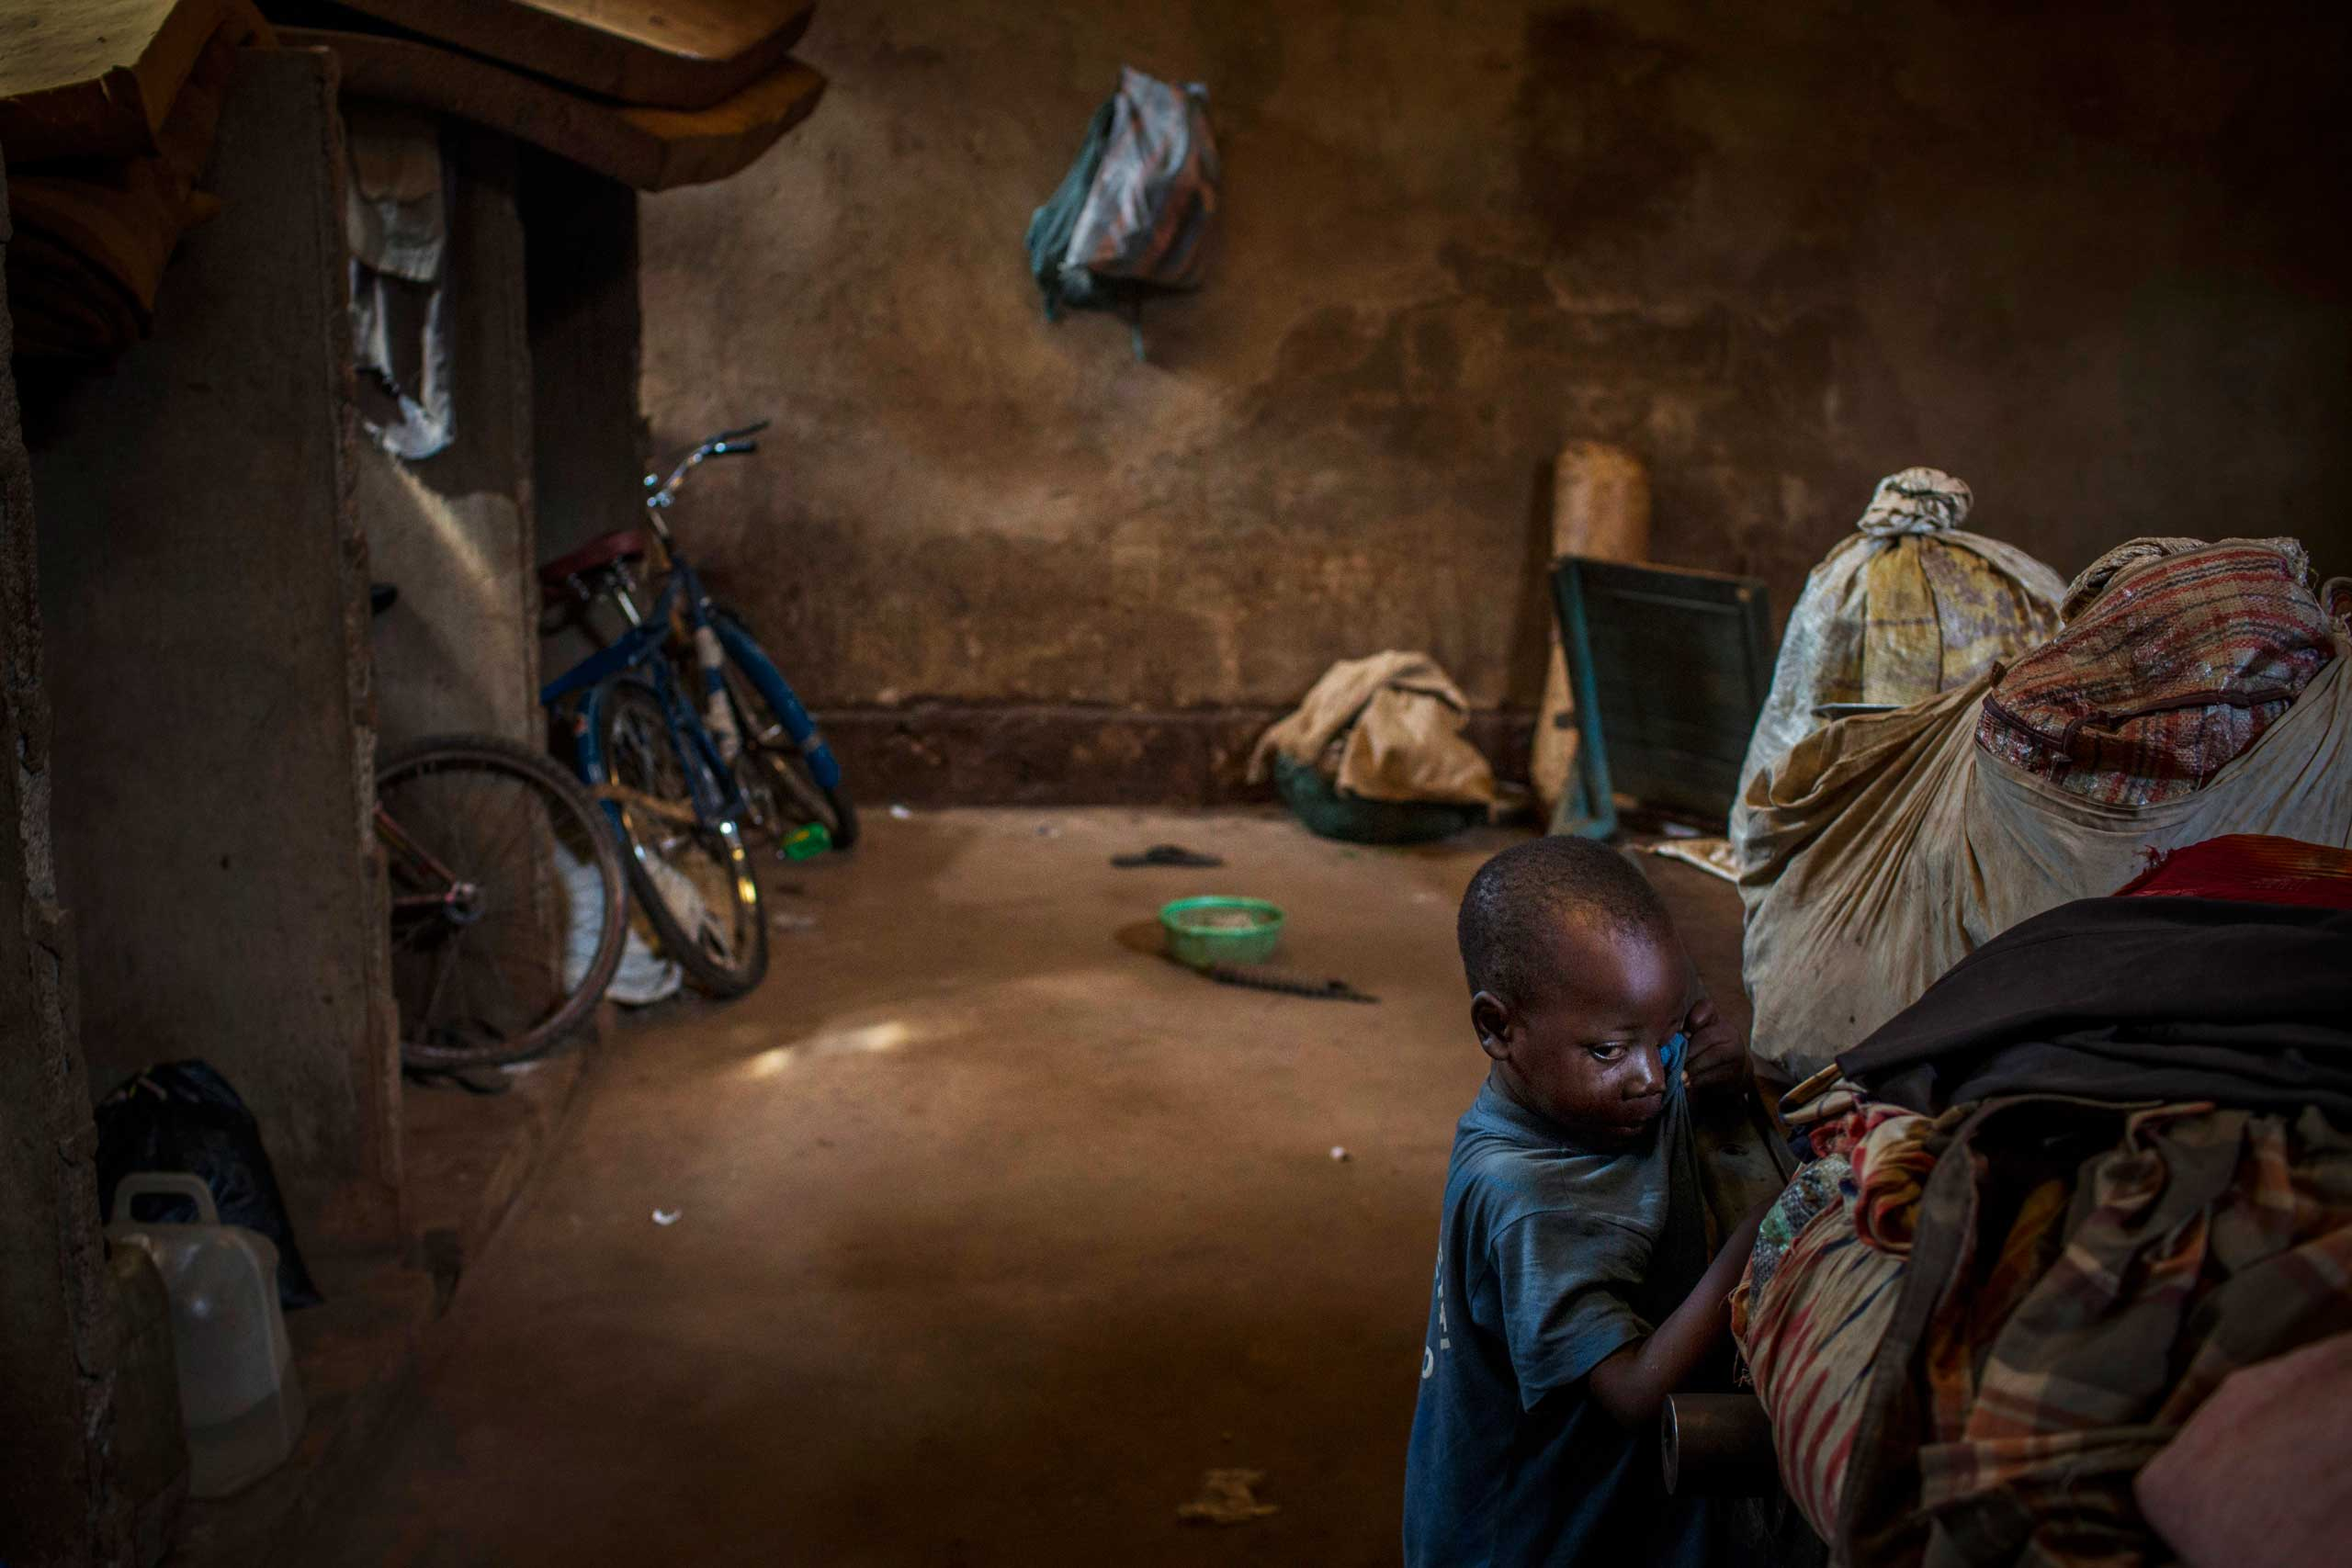 About 40,000 displaced people, many of them Christians who left their village attacked by the Séléka, took refuge in and around a cathedral. Bossangoa, Central African Republic. Nov. 19, 2013.